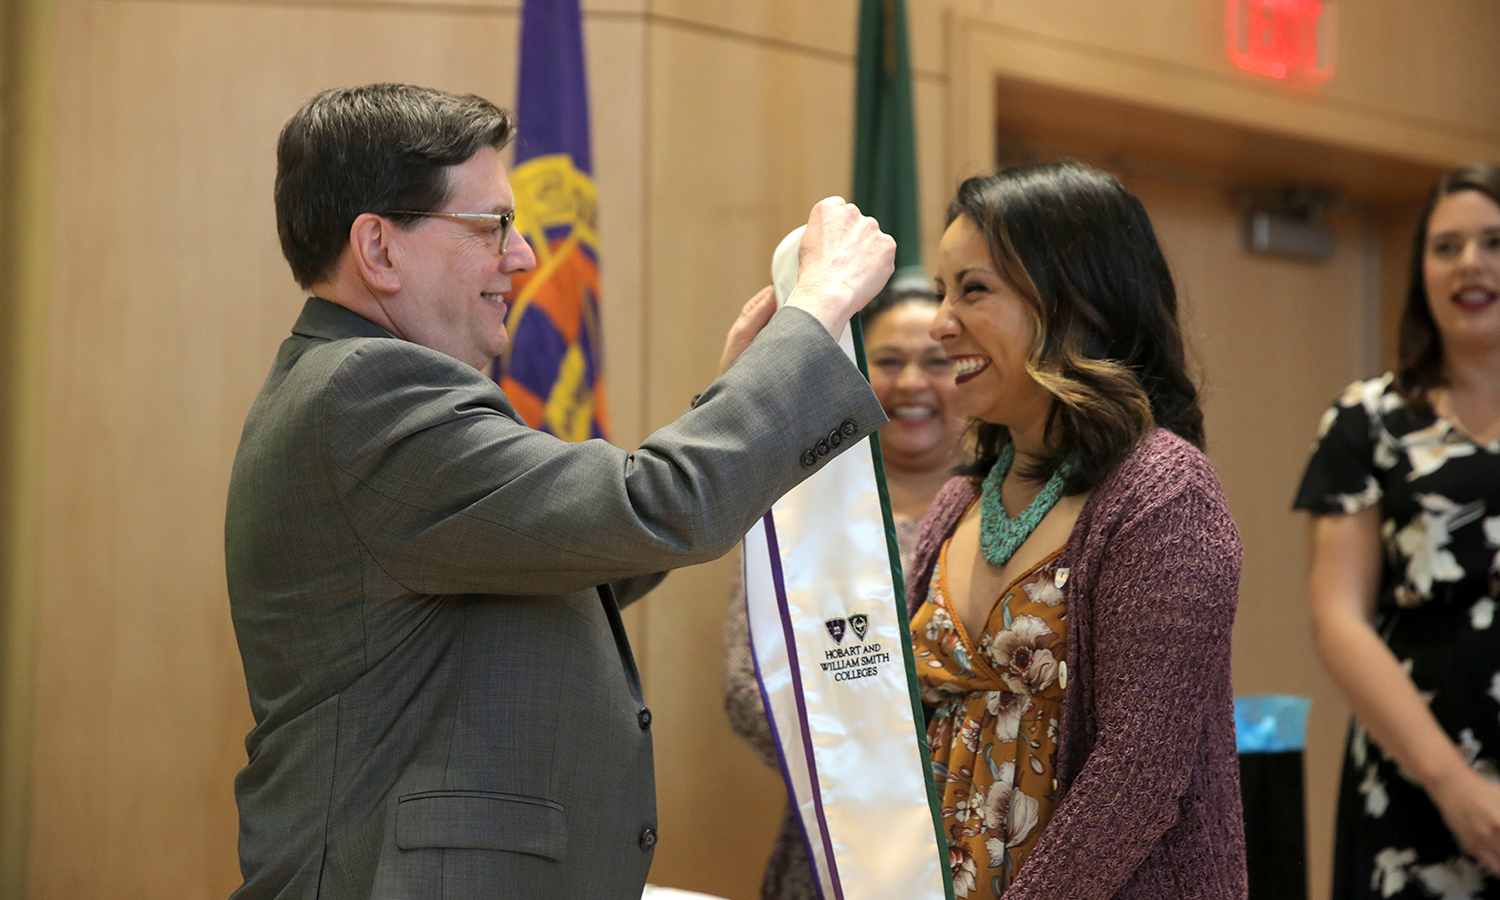 President Mark D. Gearan presents Kimberly Gutierrez '17 with the Posse stole during the Posse Recognition Ceremony in Froelich Hall of the Gearan Center for the Performing Arts.